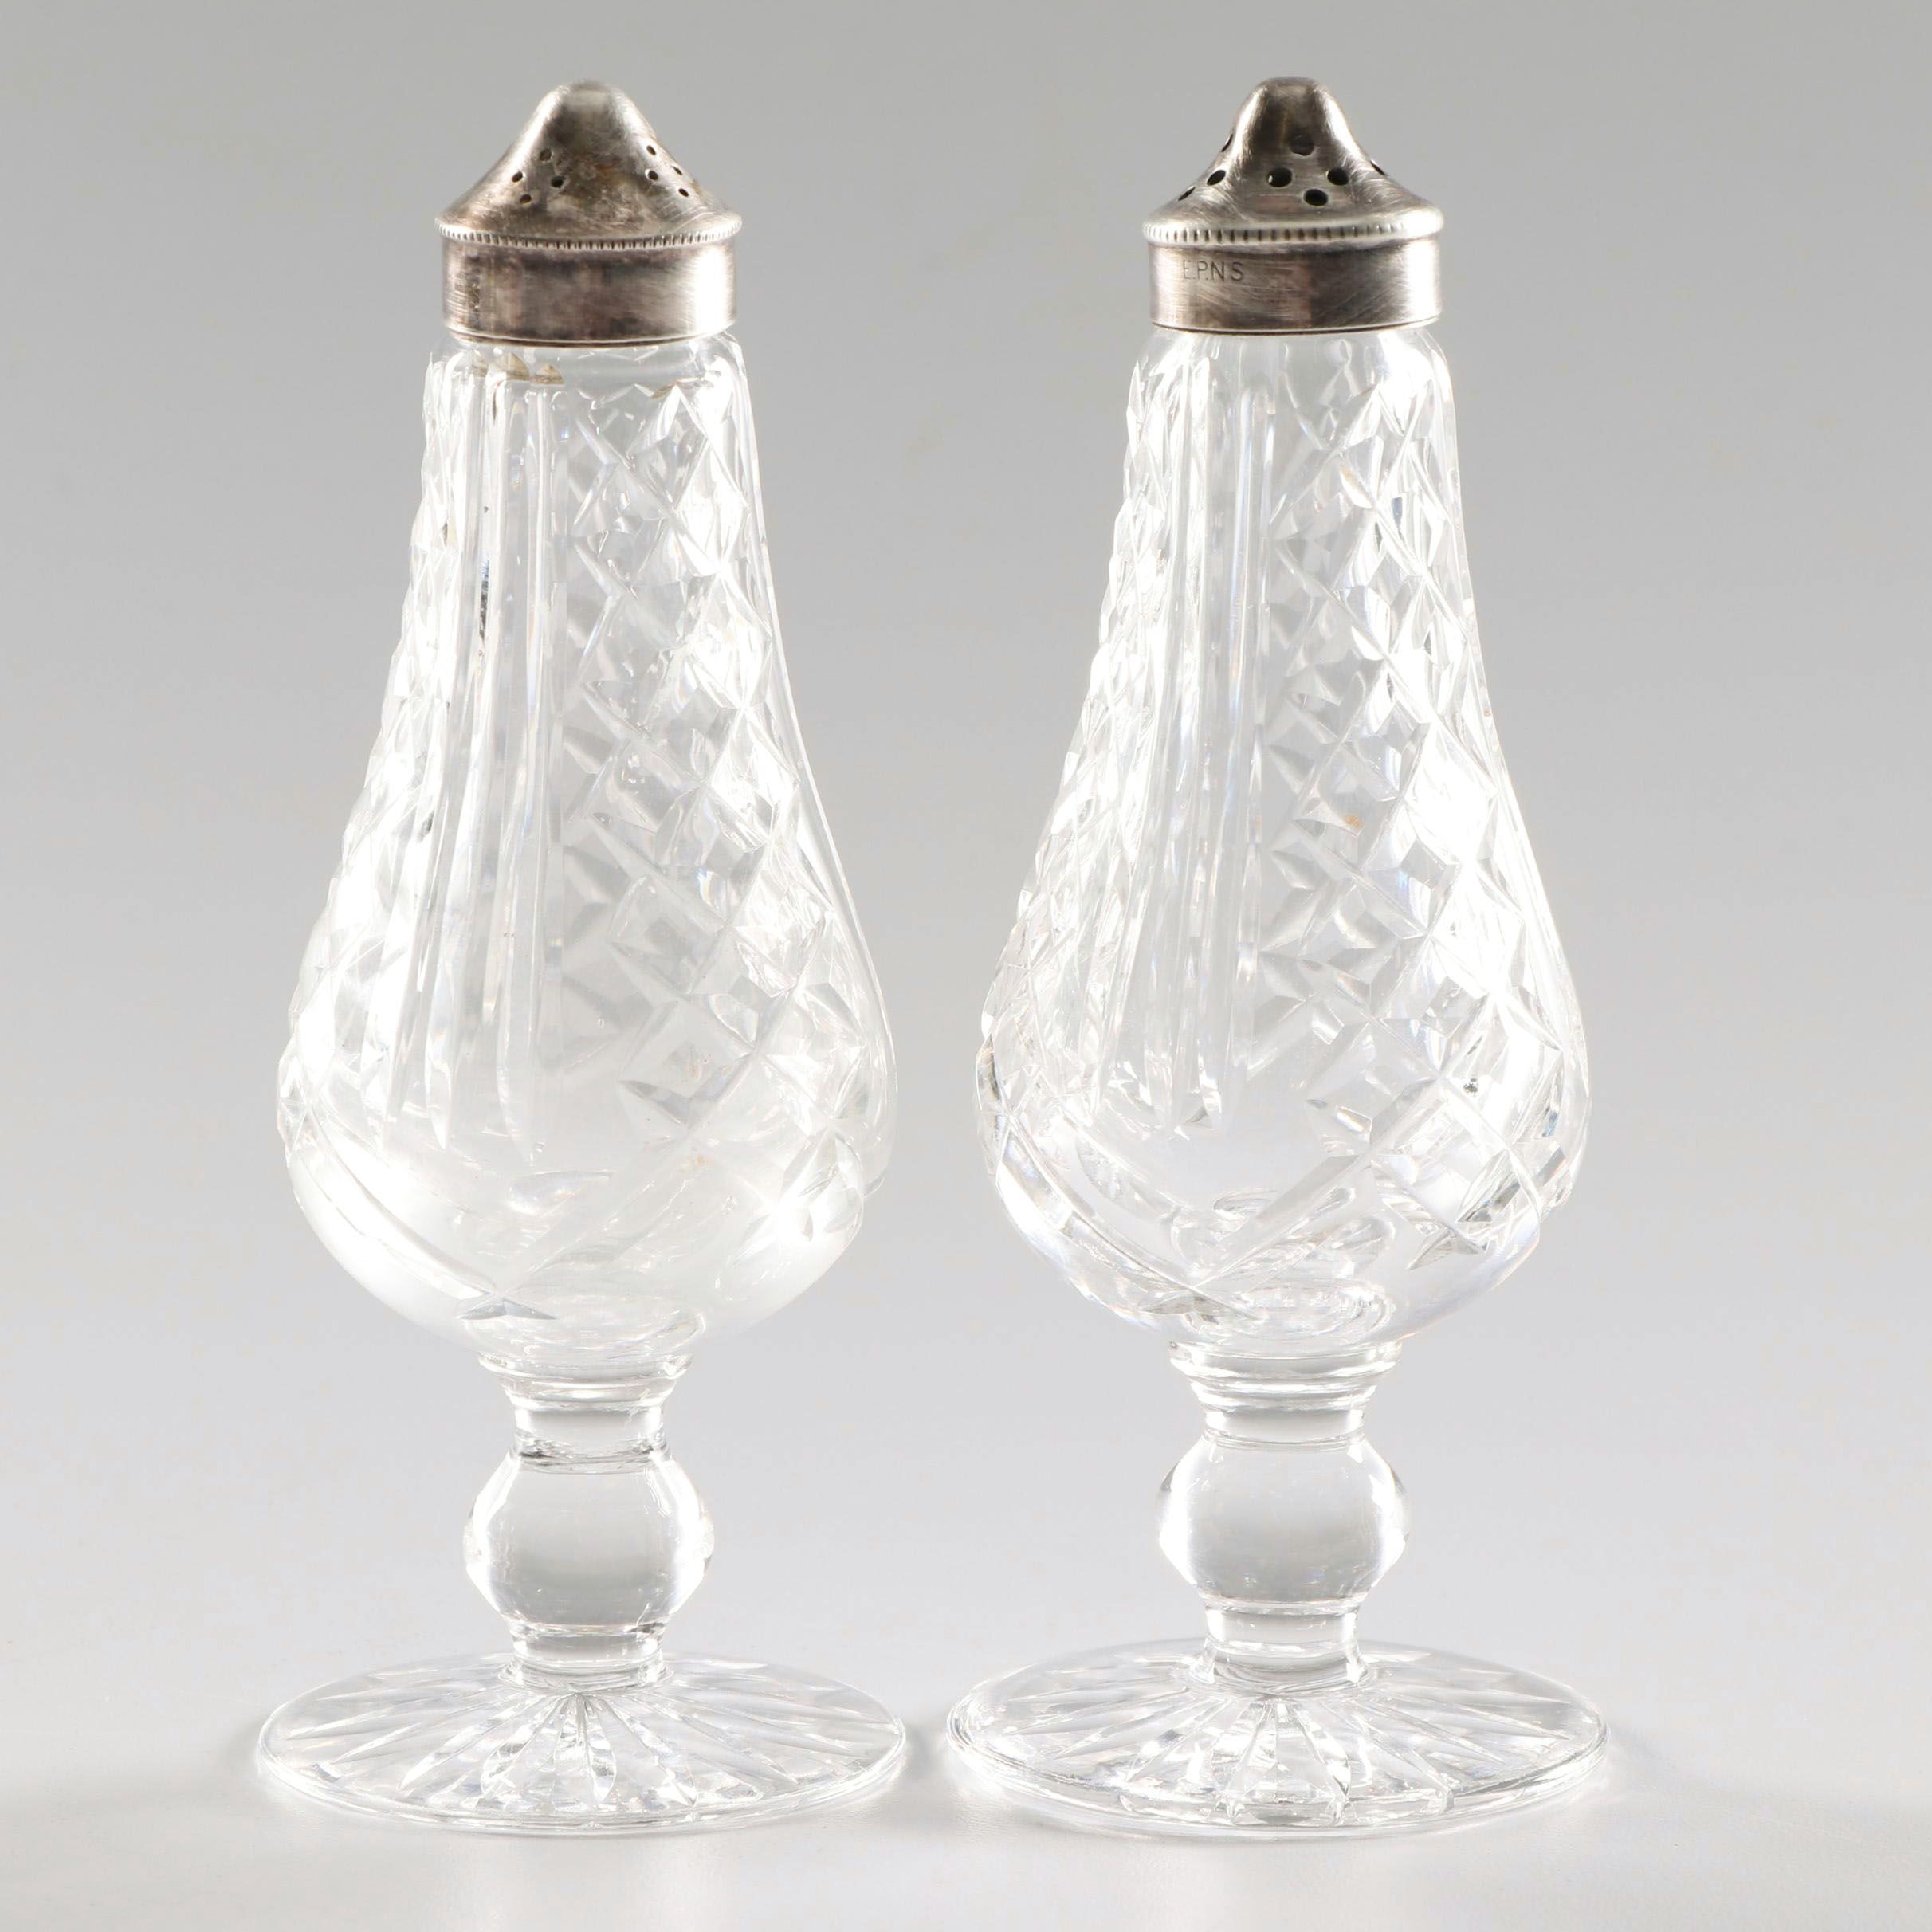 Waterford Crystal Salt and Pepper Shakers with Silver Plate Lids